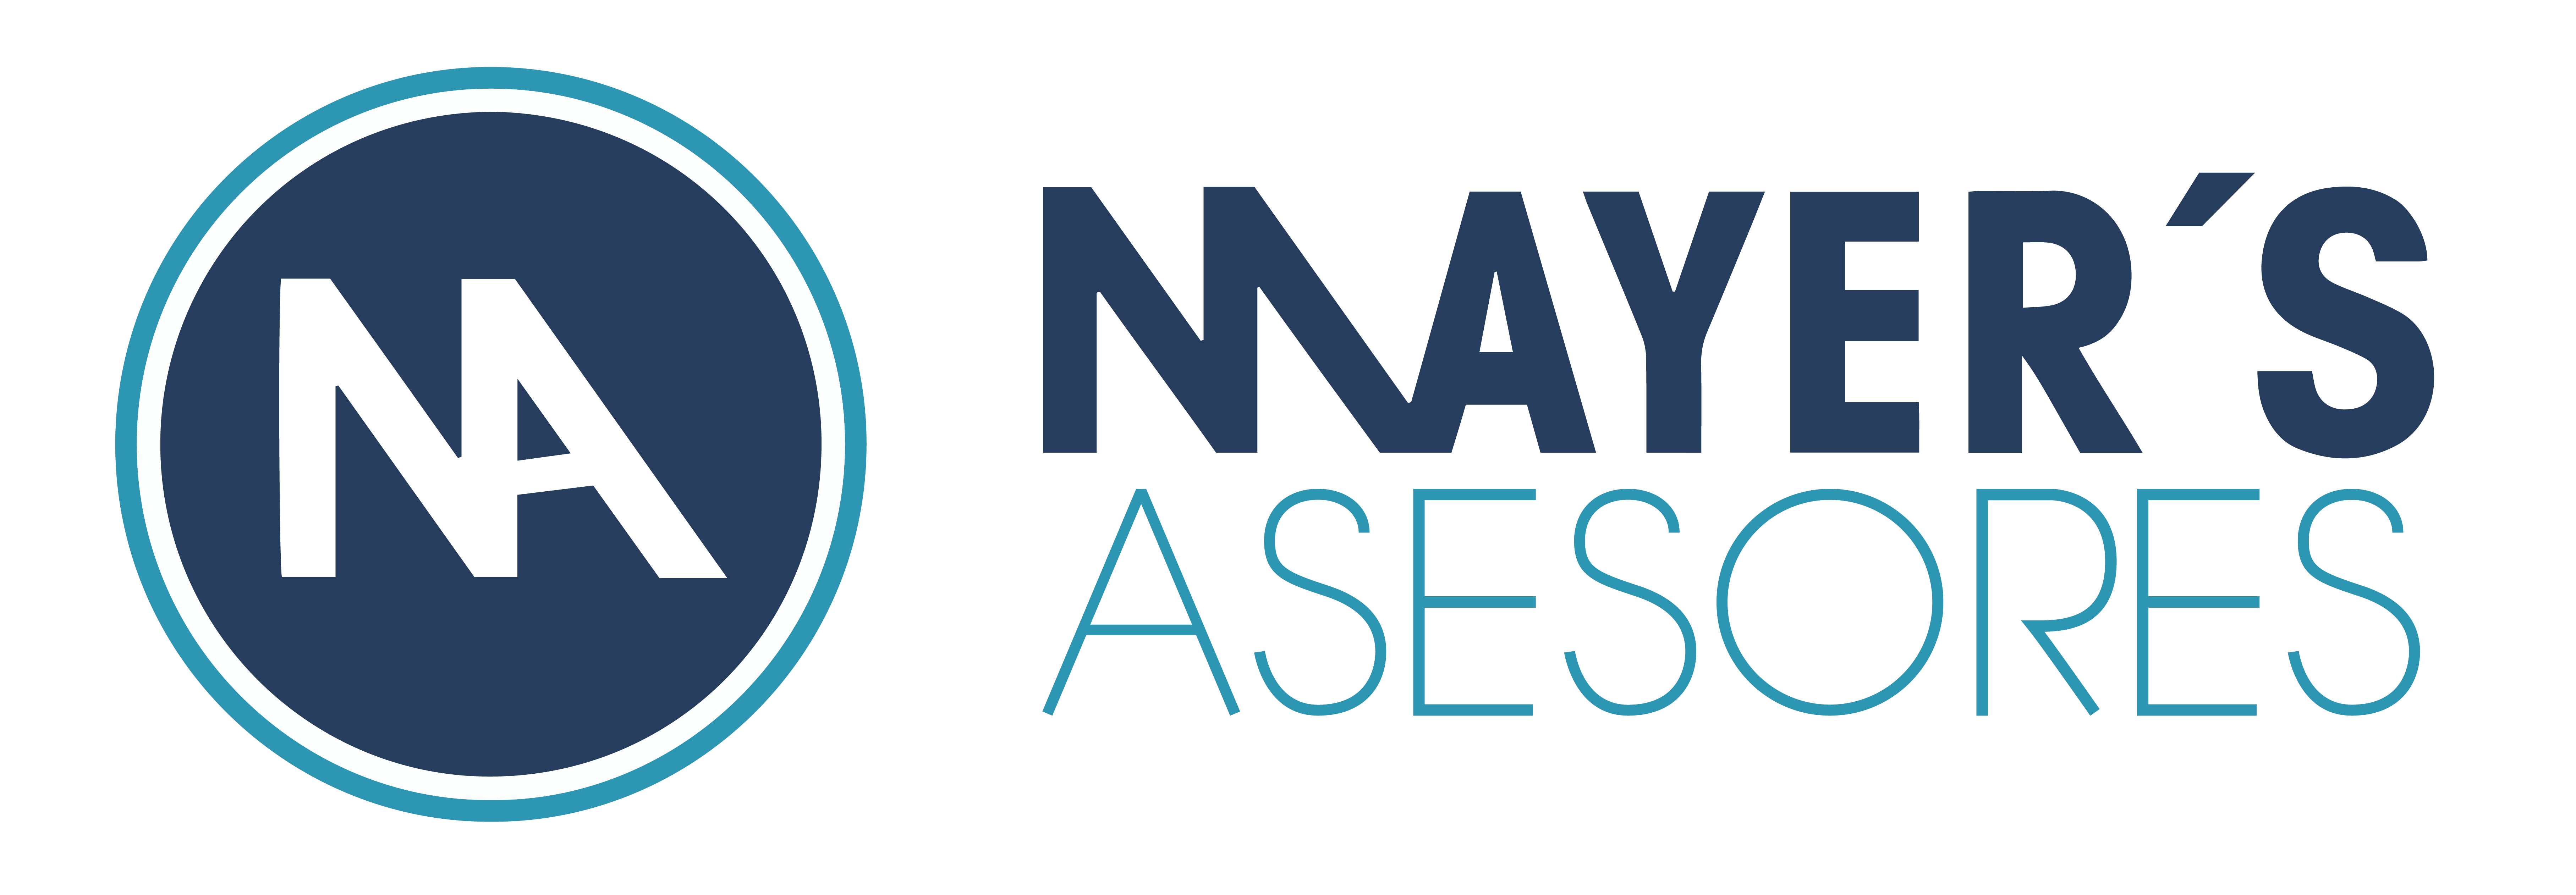 Mayers Asesores